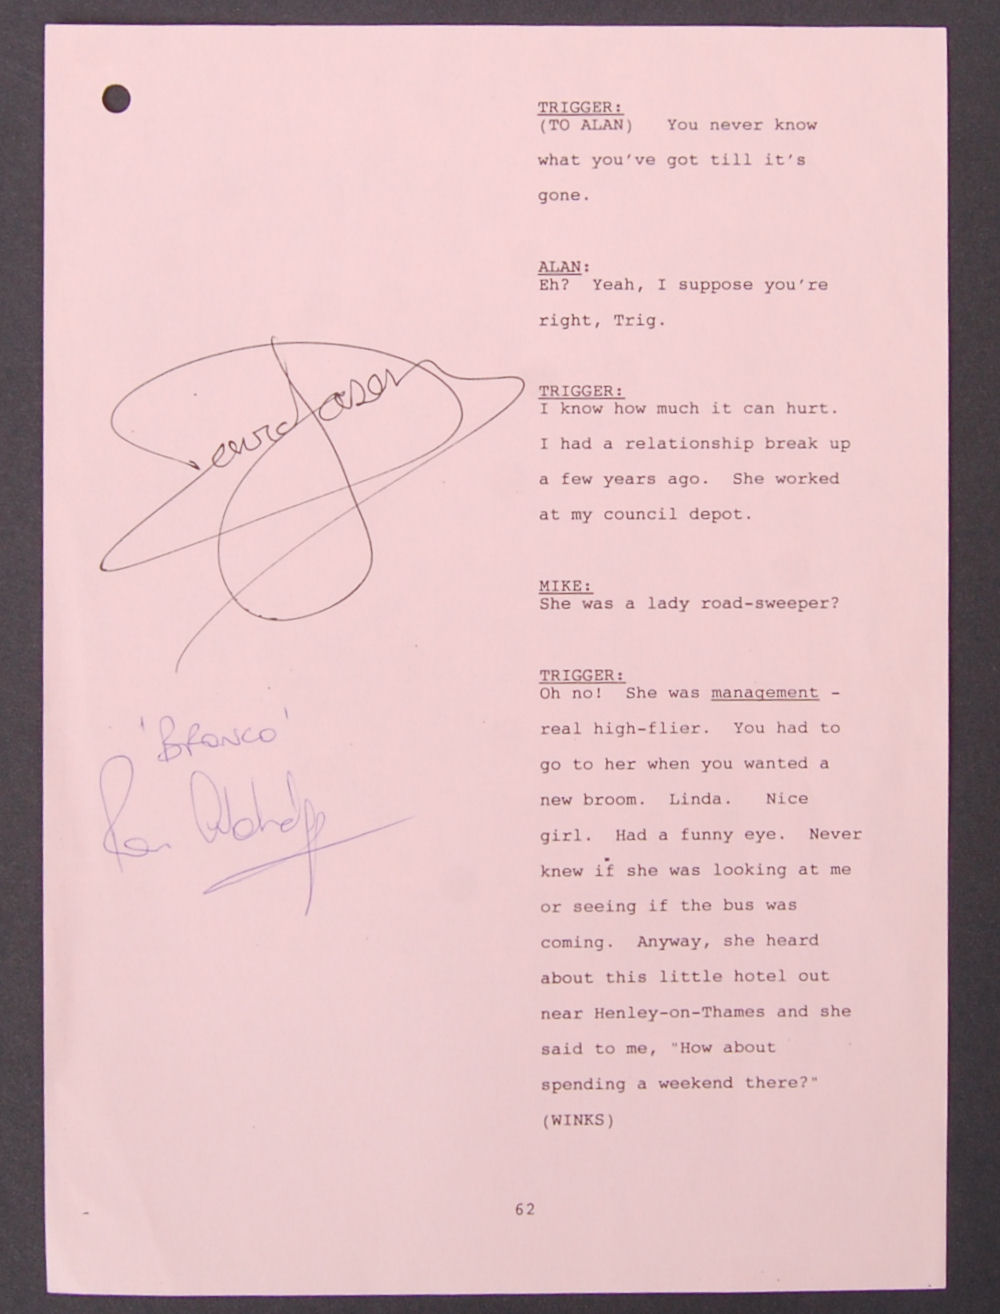 Lot 115 - ONLY FOOLS & HORSES - DUAL AUTOGRAPHED SCRIPT PAGE